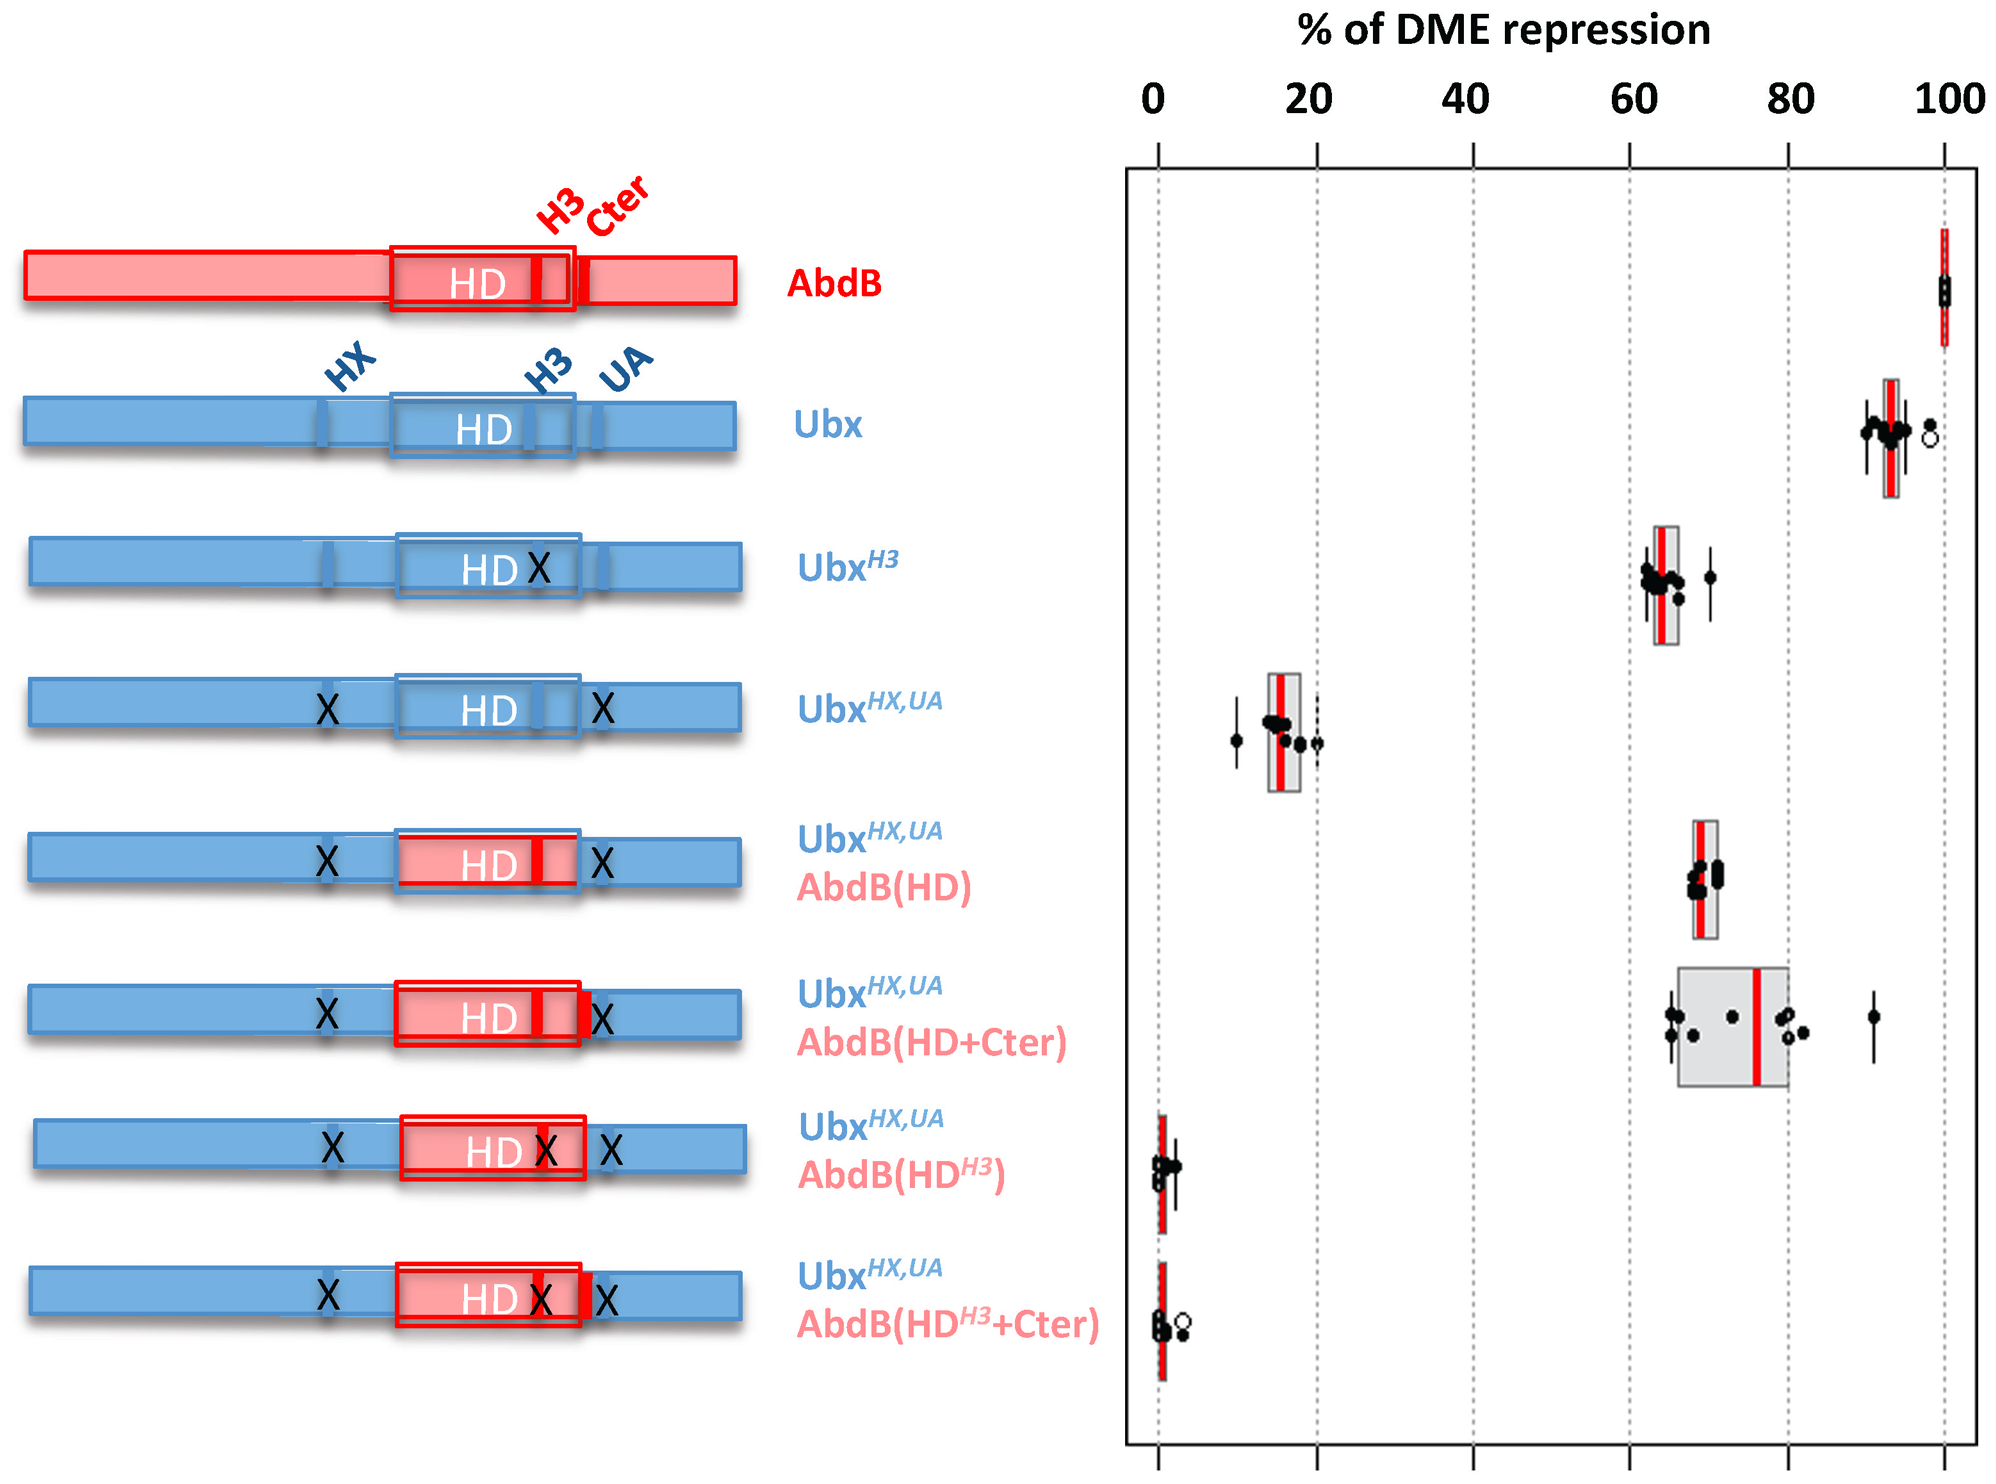 Requirement of protein domains in AbdB/Ubx chimeric proteins for DME repression.